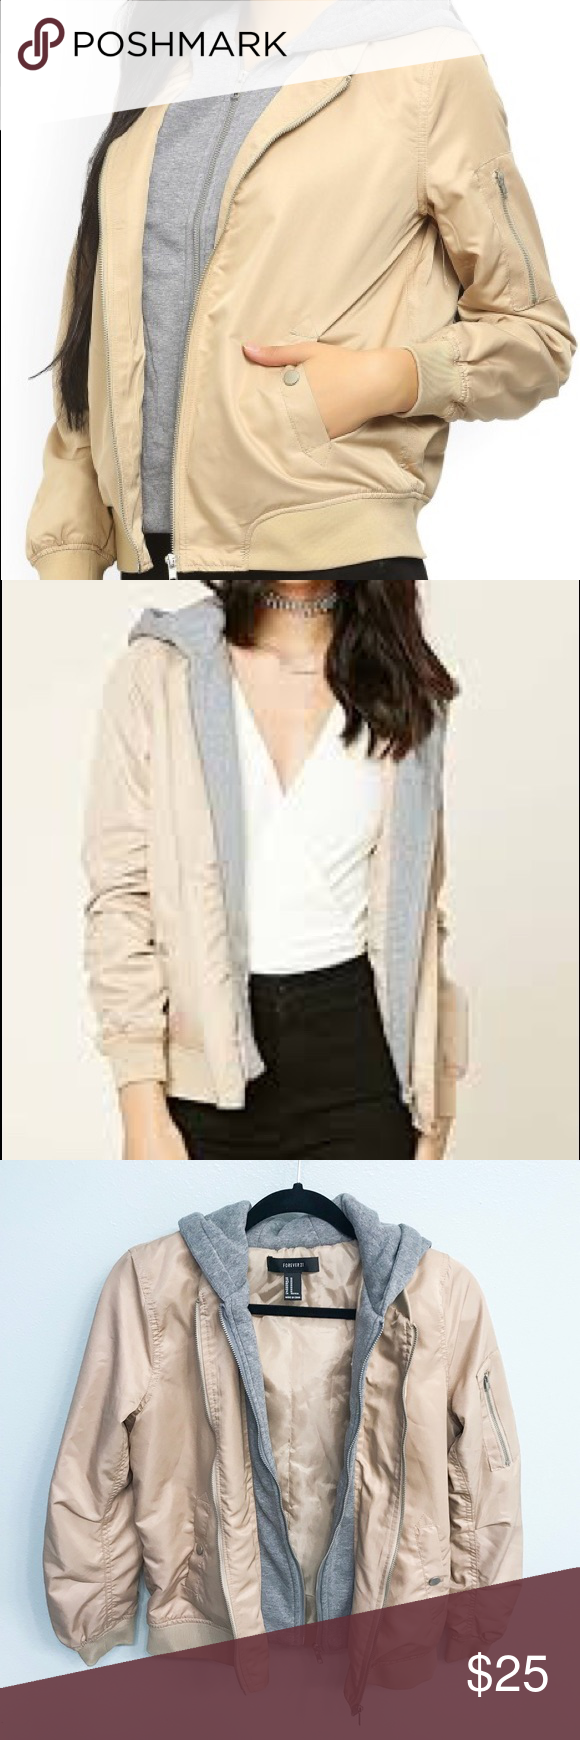 Forever 21 Tan And Gray Bomber Jacket Size M Grey Bomber Jacket Tan Bomber Jacket Bomber Jacket [ 1740 x 580 Pixel ]